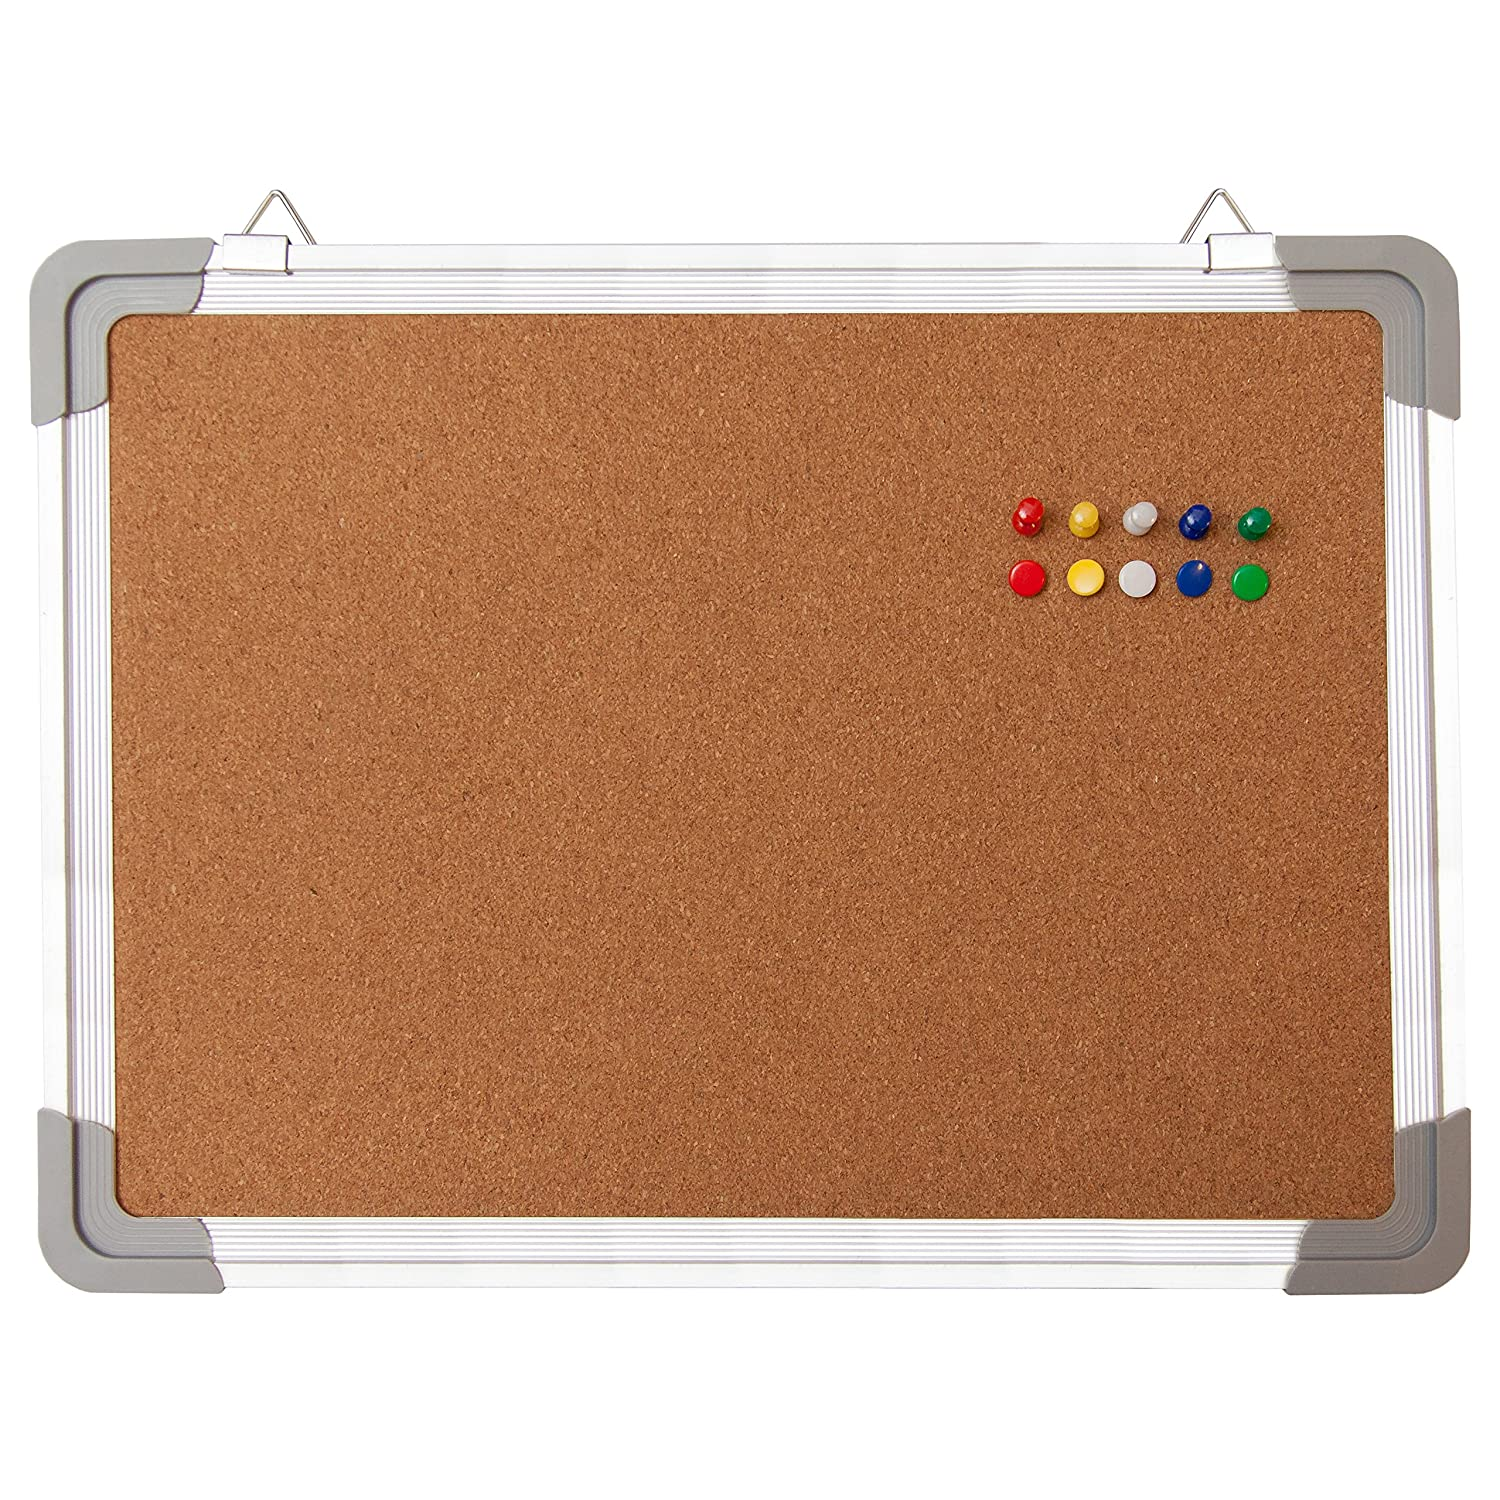 """Bulletin Board Set - Cork Board 16 x 12"""" + 10 Color Pins - Small Mini Hanging Tack Message Memo Picture Board for Home Office School - Presentation, Display and Planning (16x12"""" Cork)"""